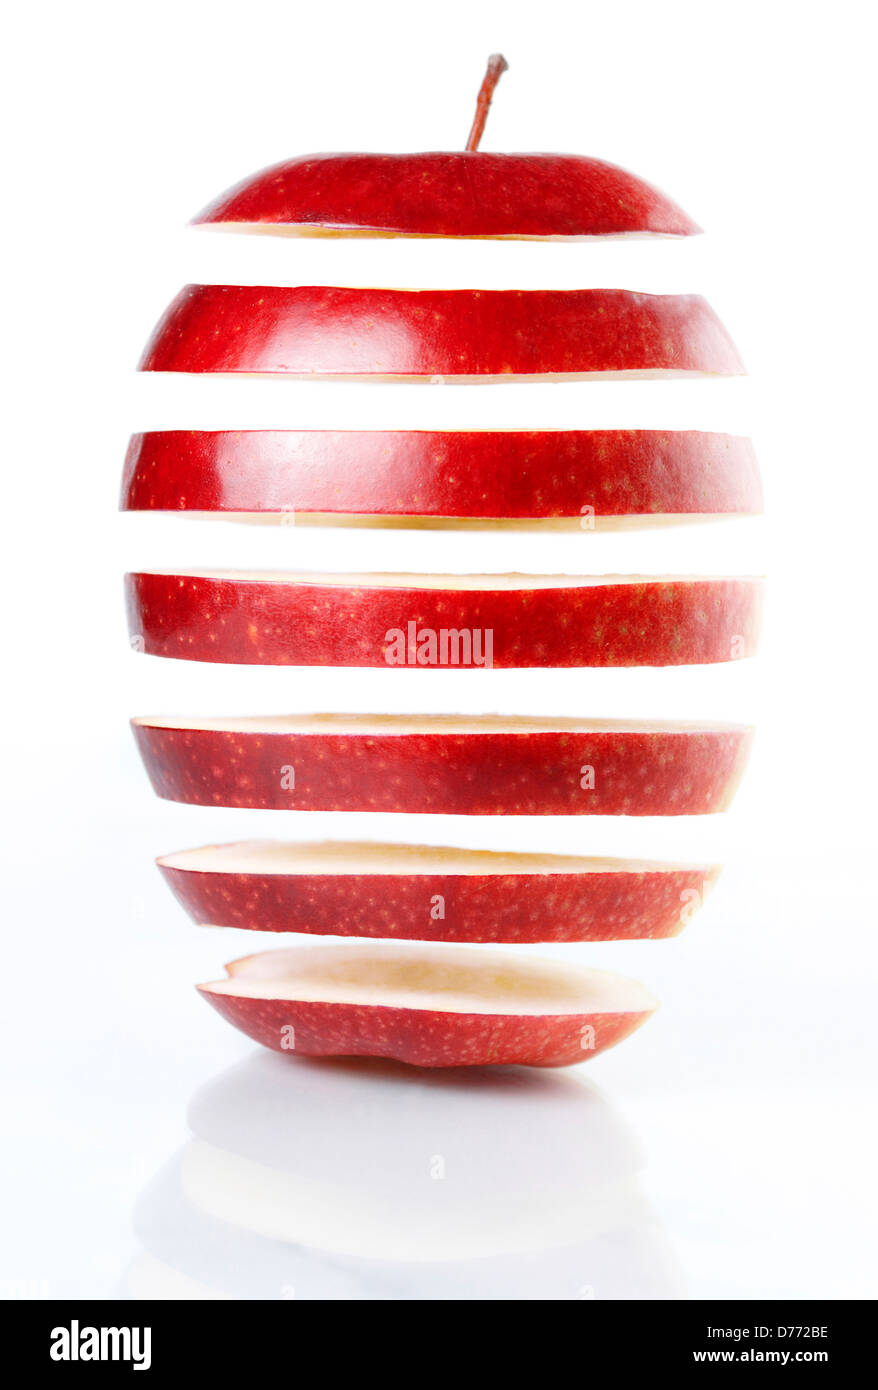 Slices of red apple hanging in mid-air isolated on white background. Food genetical engineering concept. - Stock Image